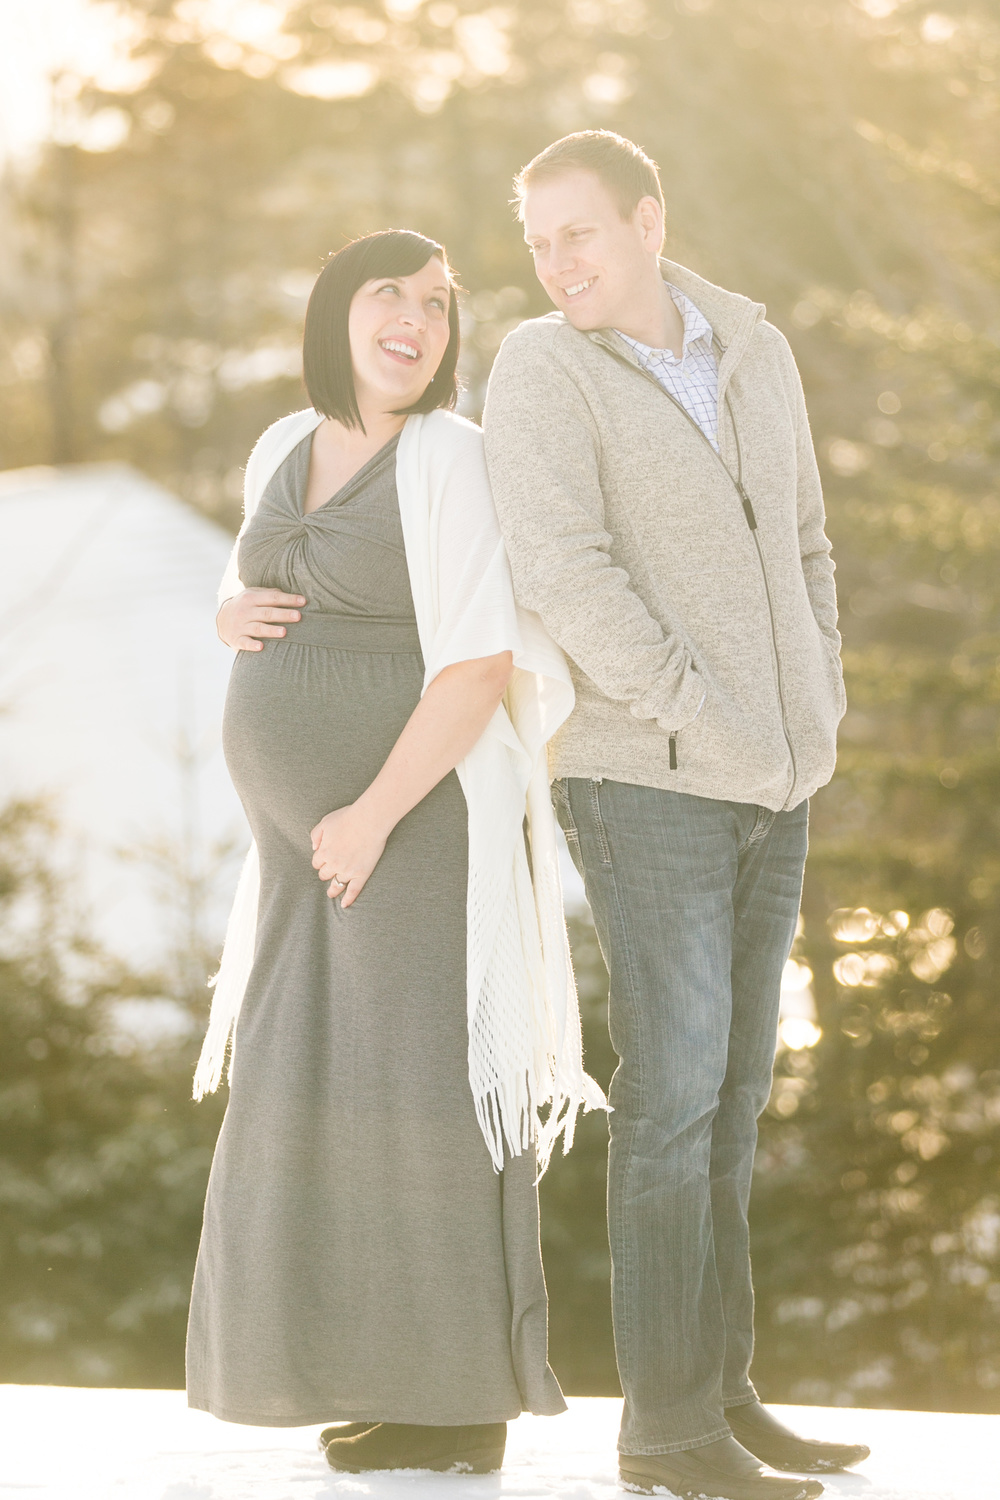 744-halifax-maternity-photography.jpg